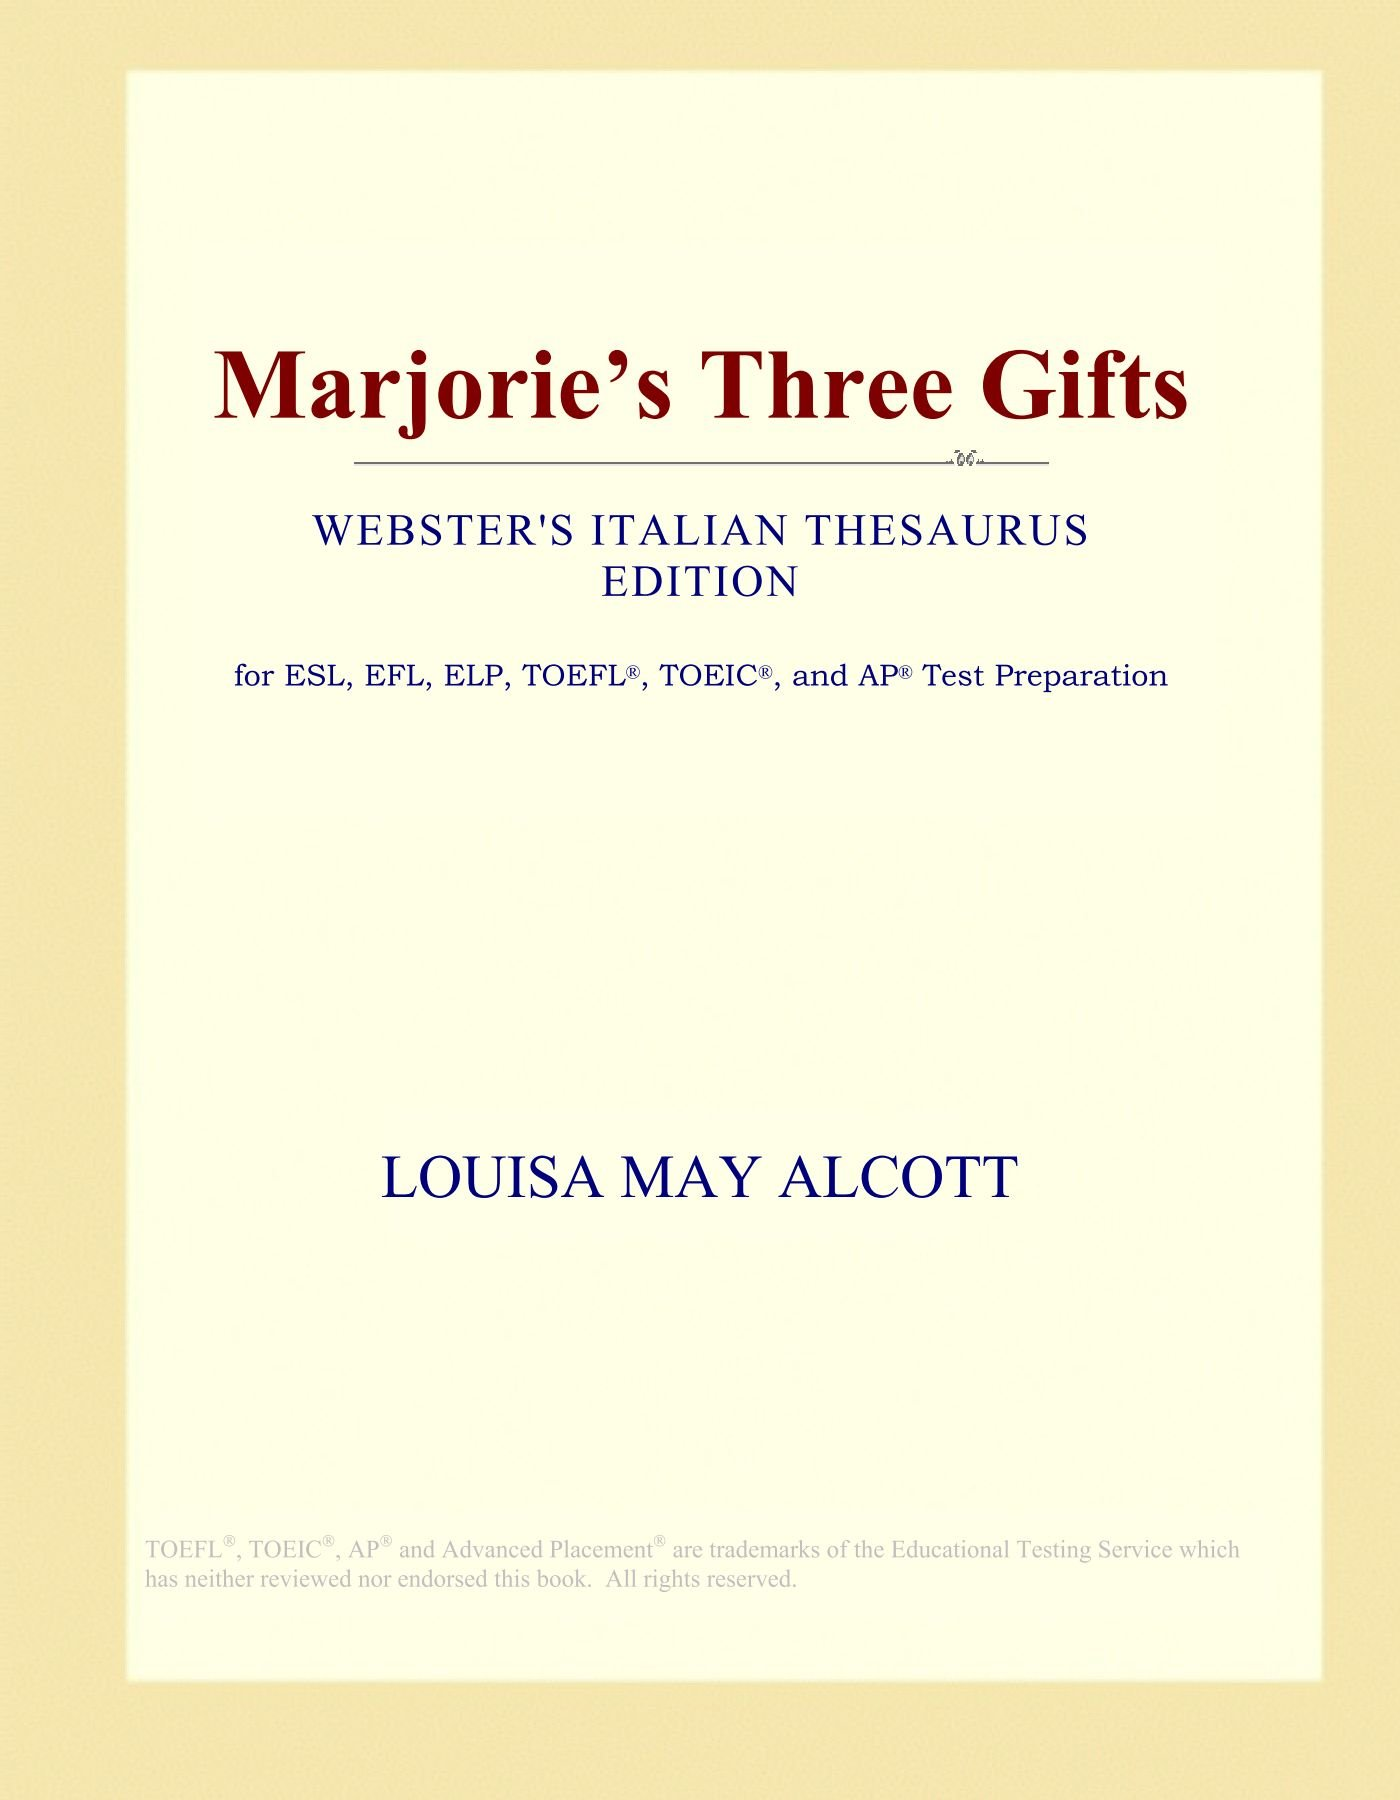 Marjorie's Three Gifts (Webster's Italian Thesaurus Edition) pdf